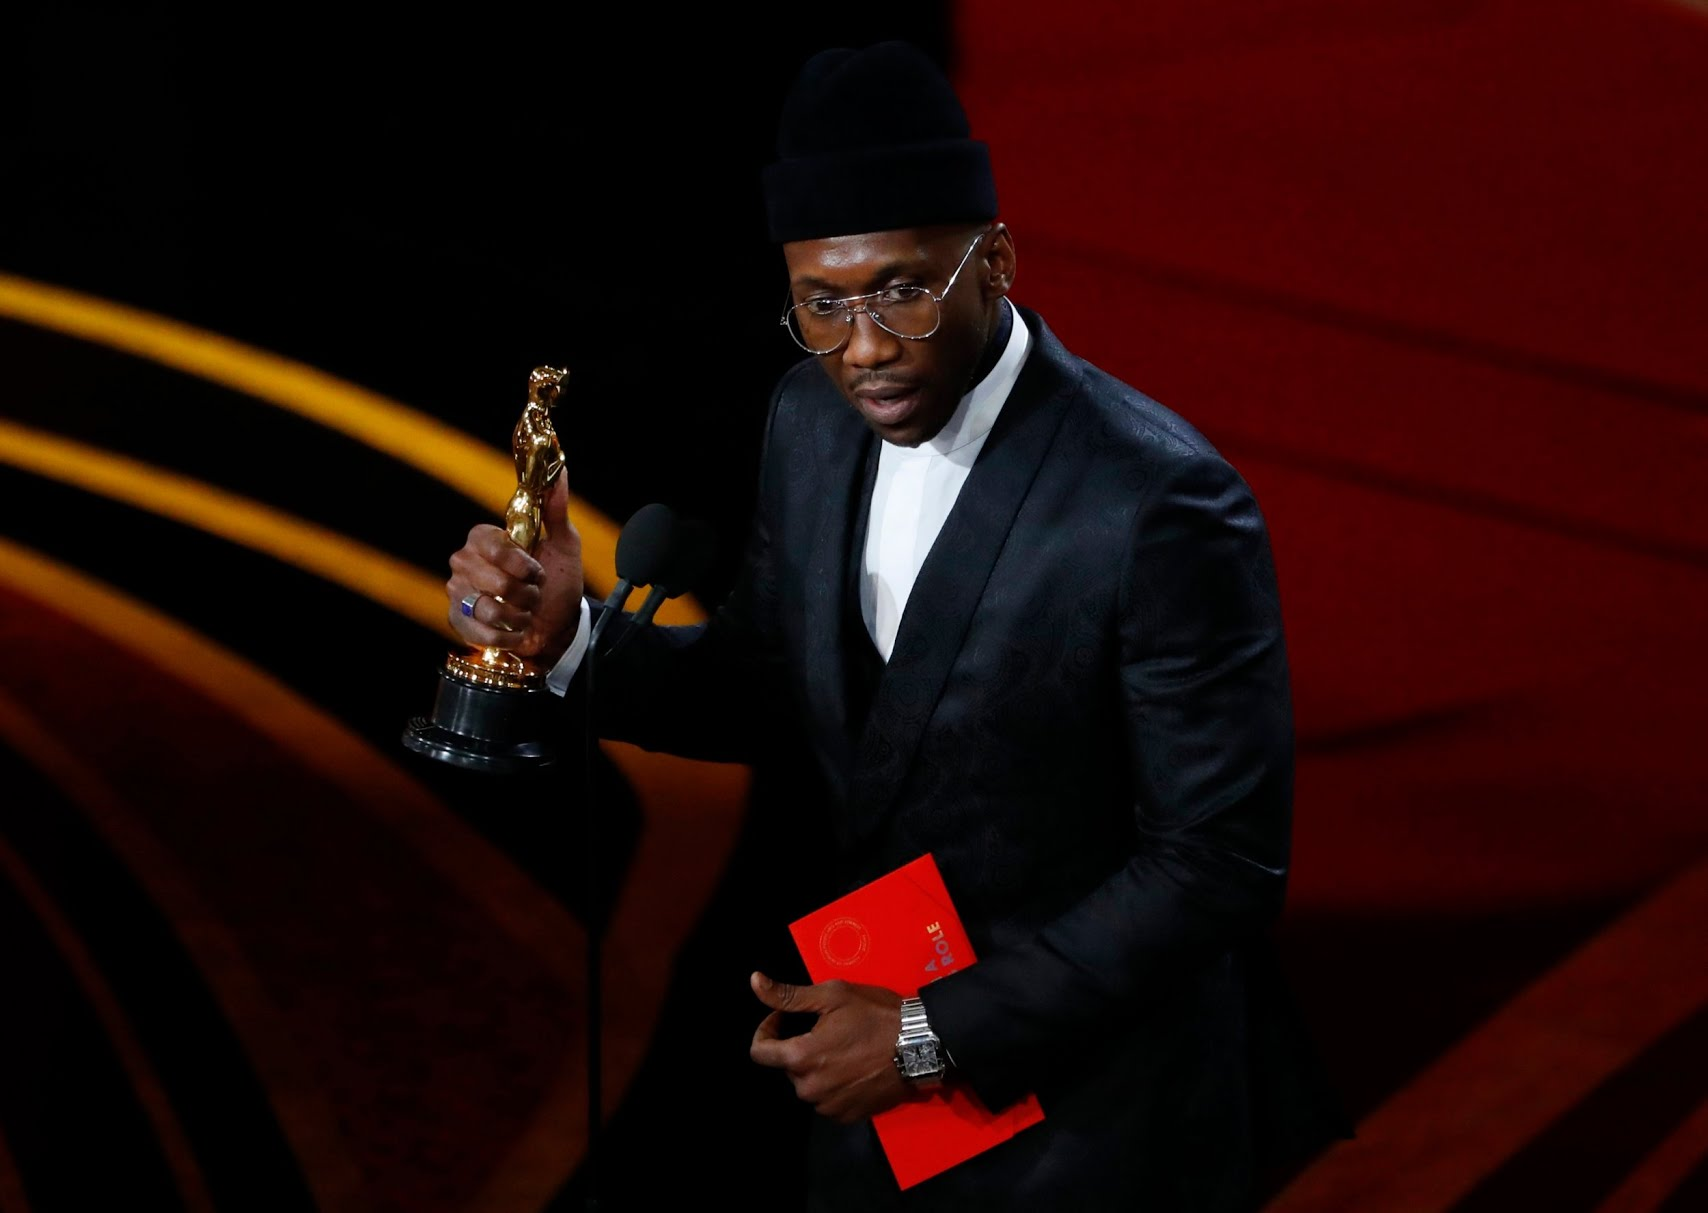 Mahershala Ali accepts the Best Supporting Actor award for his role in Green Book